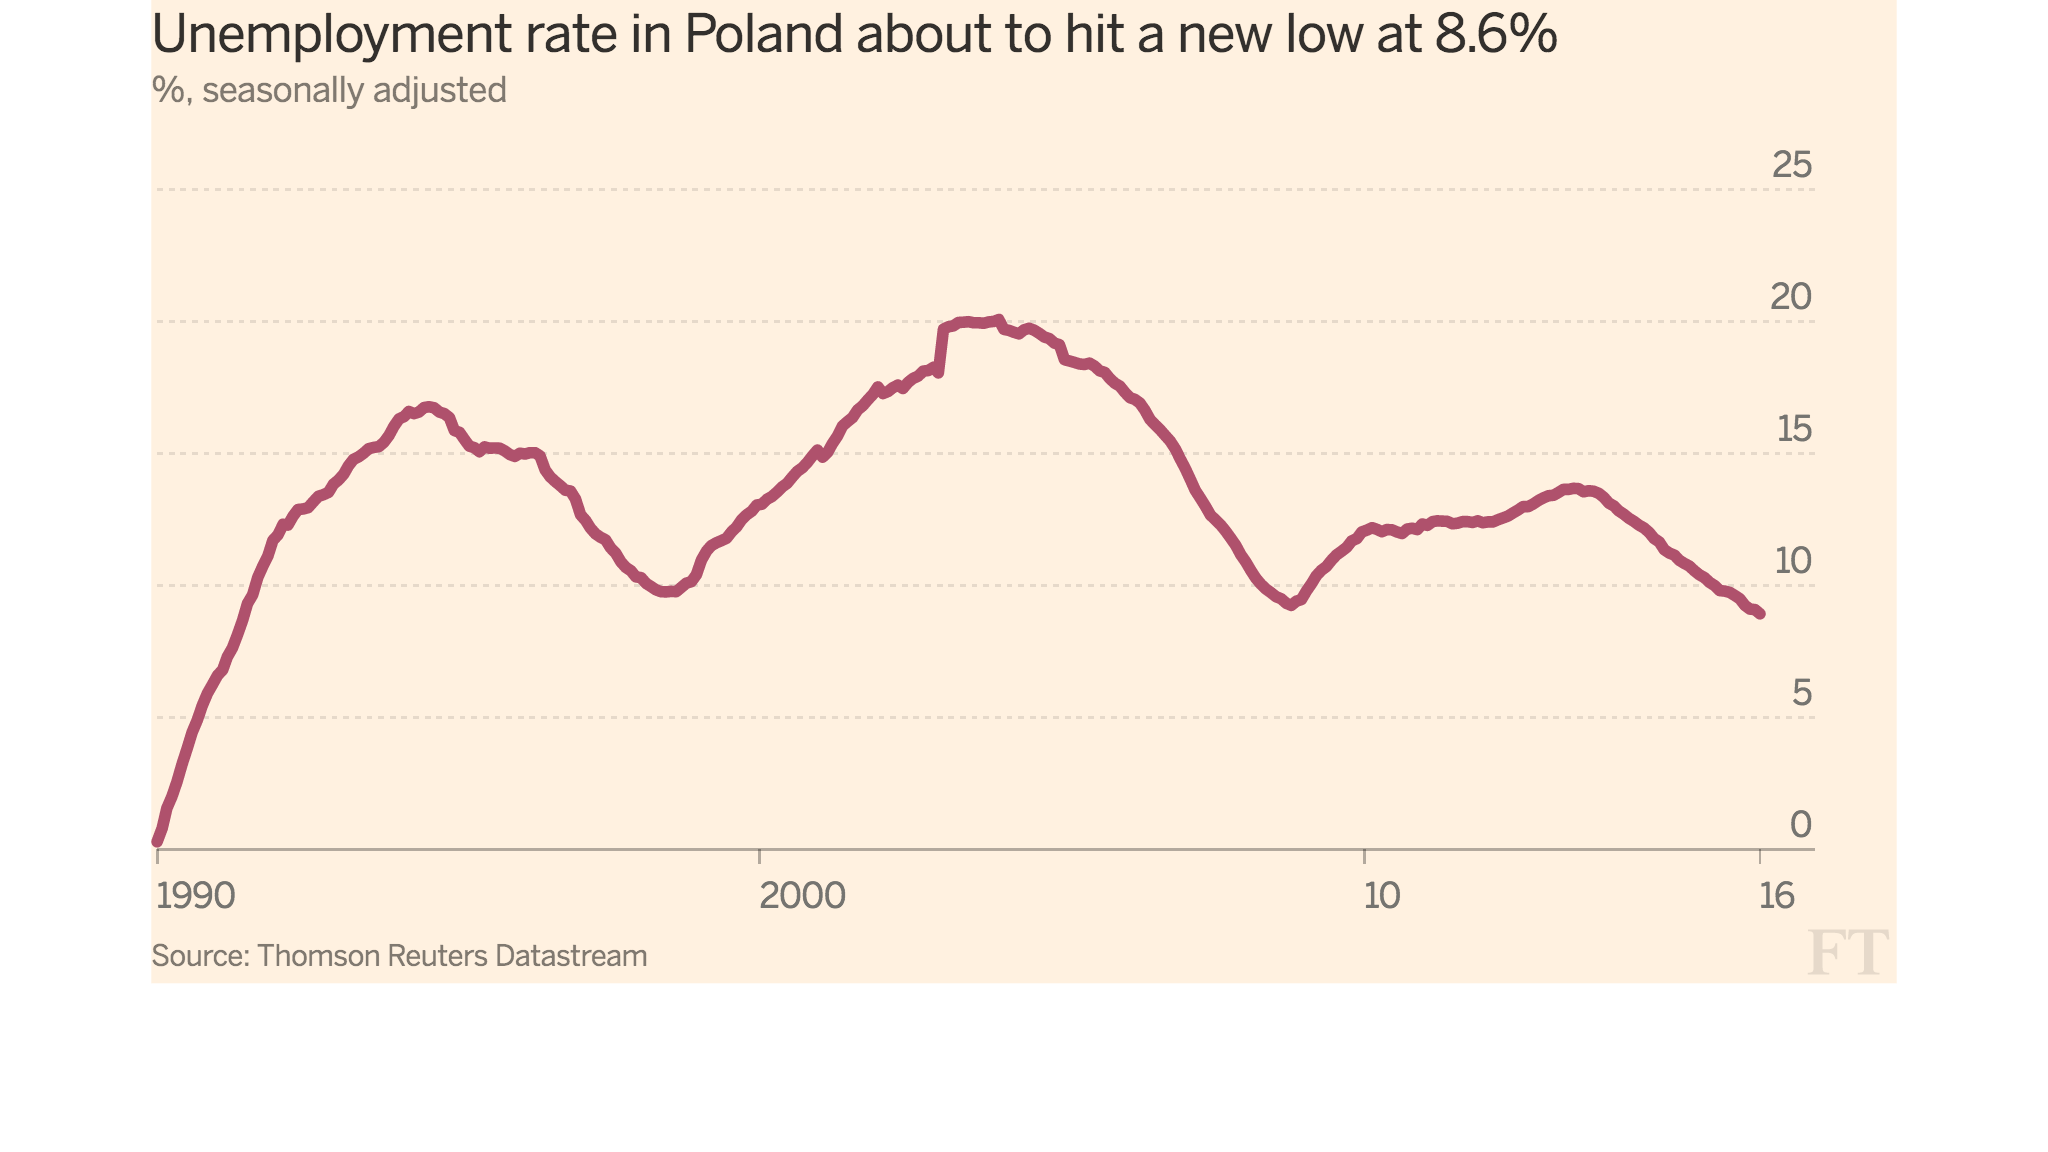 unemployment in to hit a year low ft data since the overhaul of its economy has continuously registered double digit unemployment rate except when it briefly dipped to 8 8 per cent in 2008